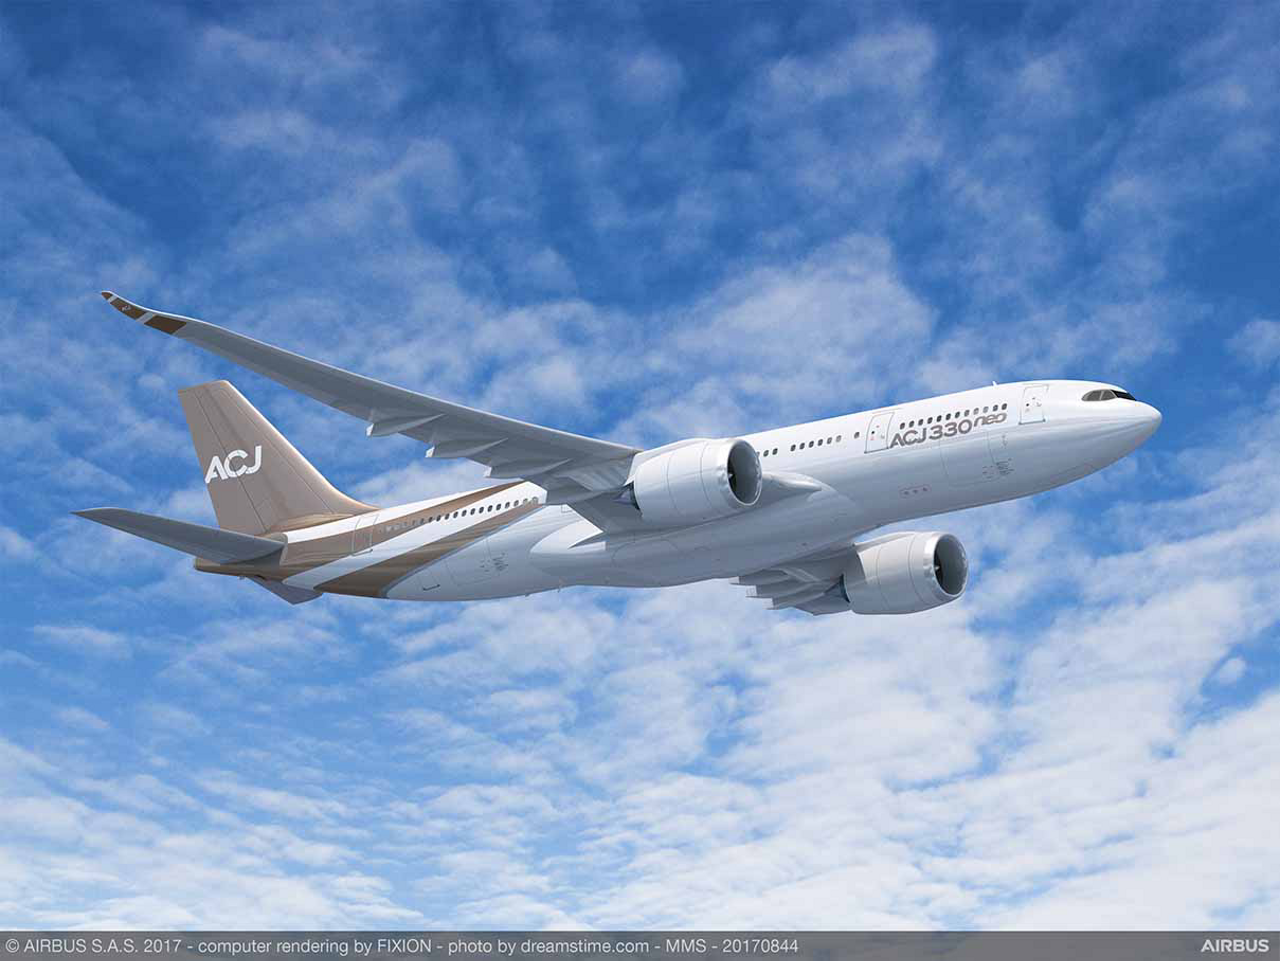 The ACJ330neo – launched by Airbus Corporate Jets in 2017 – will fly 25 passengers 9,400 nm/17,400 km or 20 hours, which is enough to fly nonstop from Europe to Australia